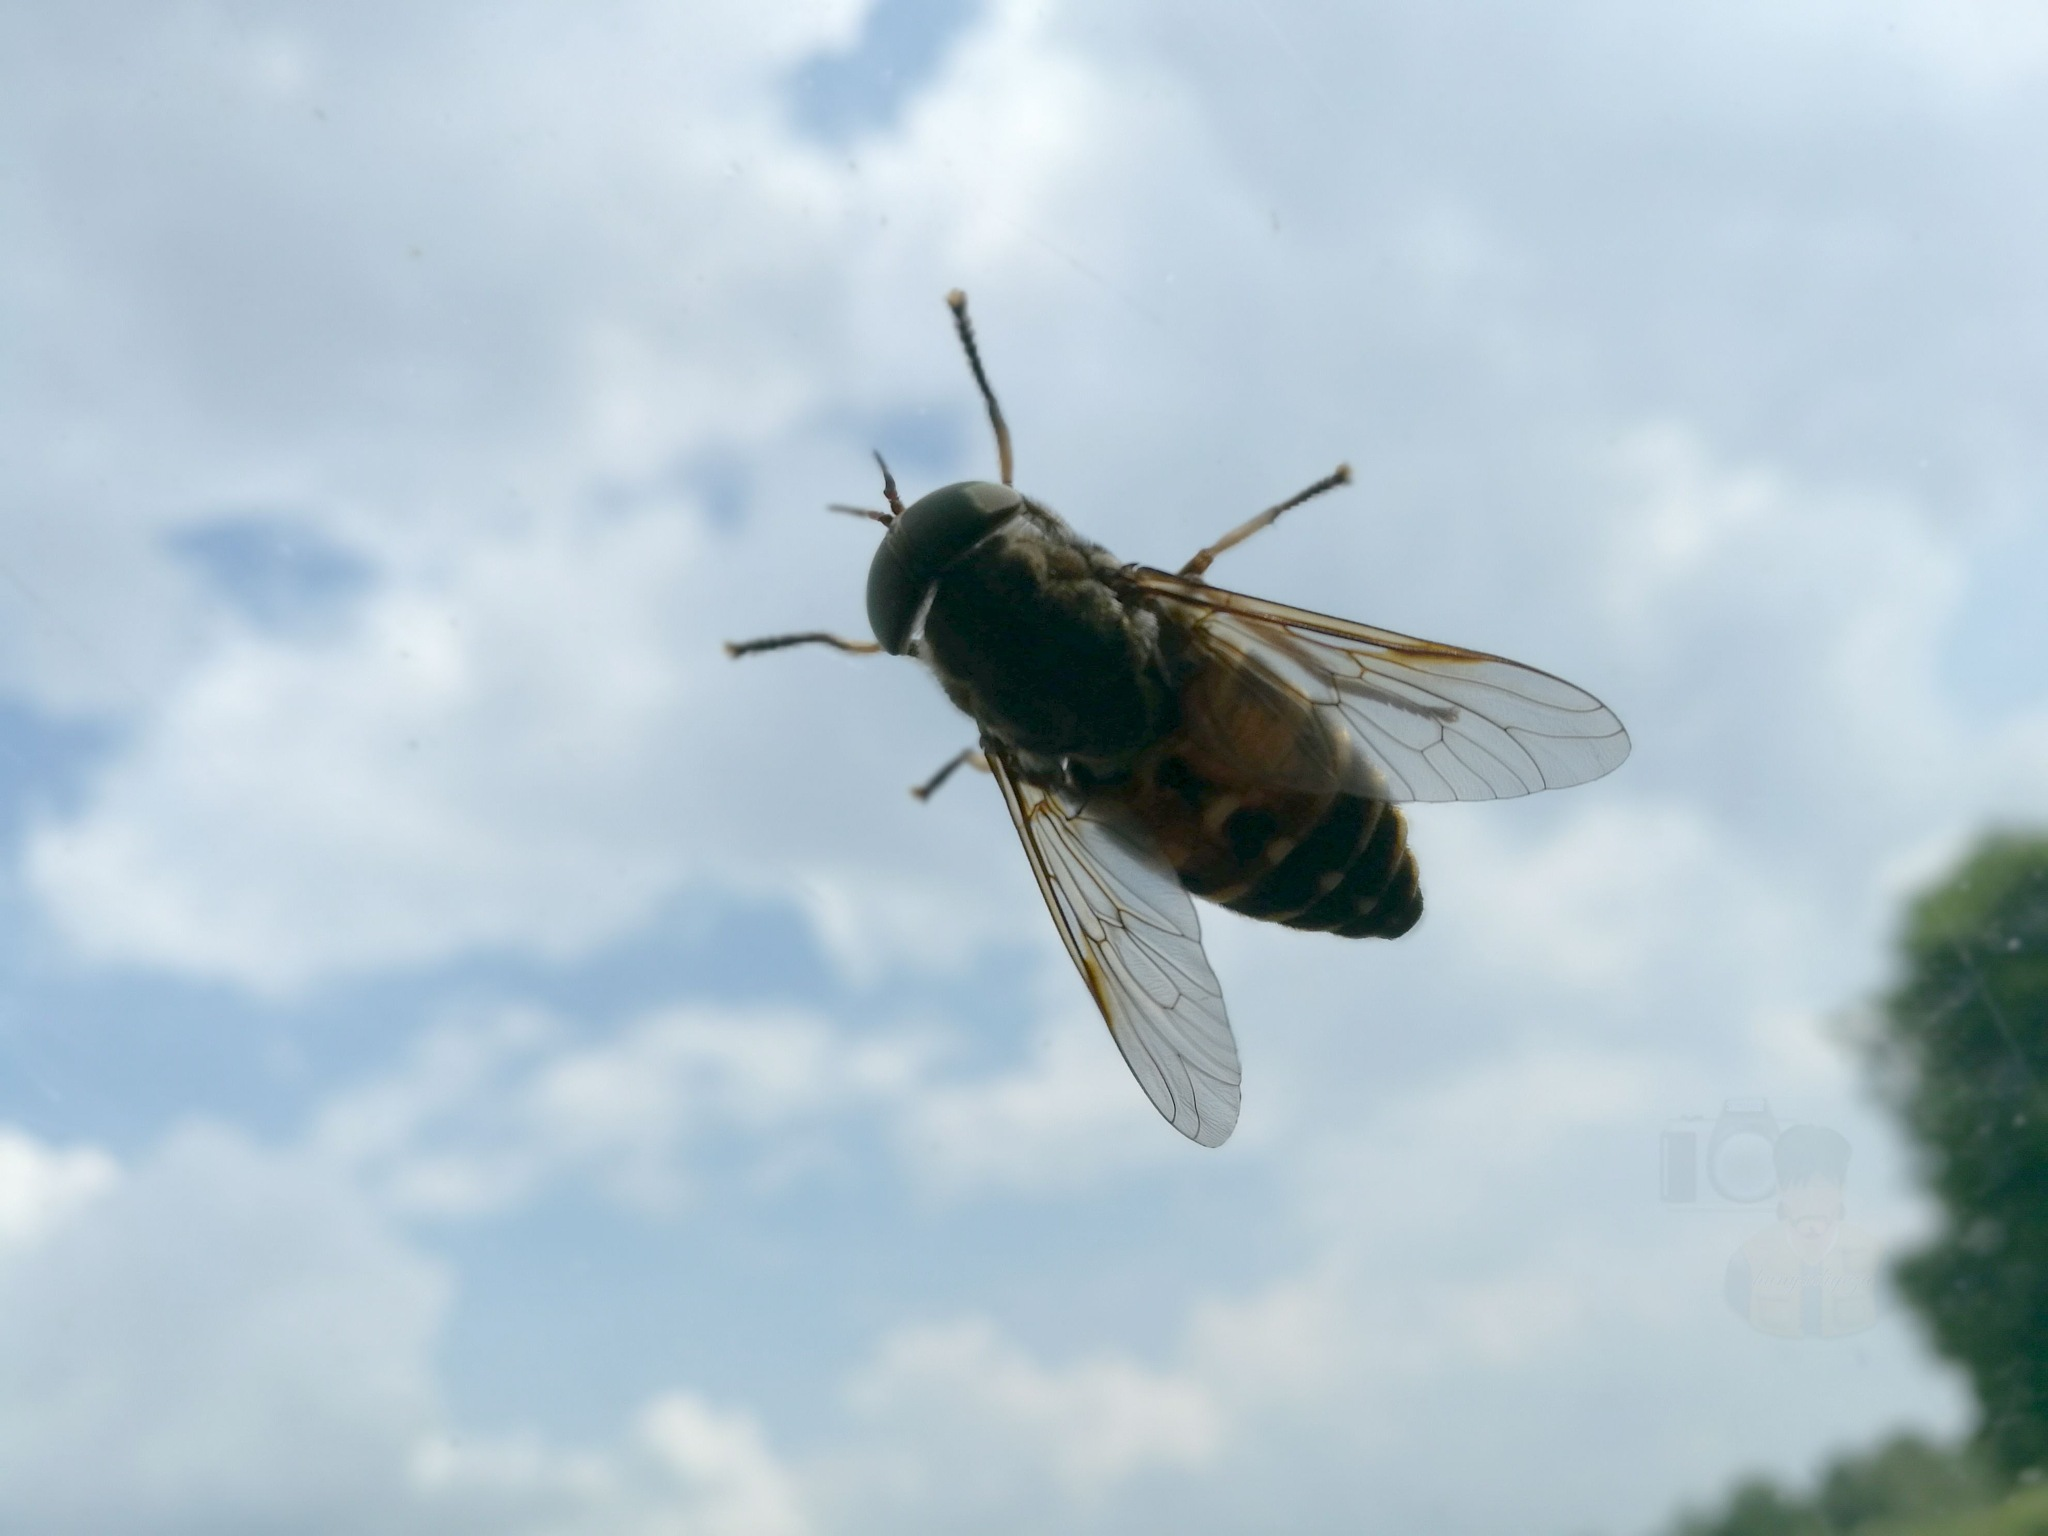 June 06, Horse-fly on my car's window by hunyadigeza